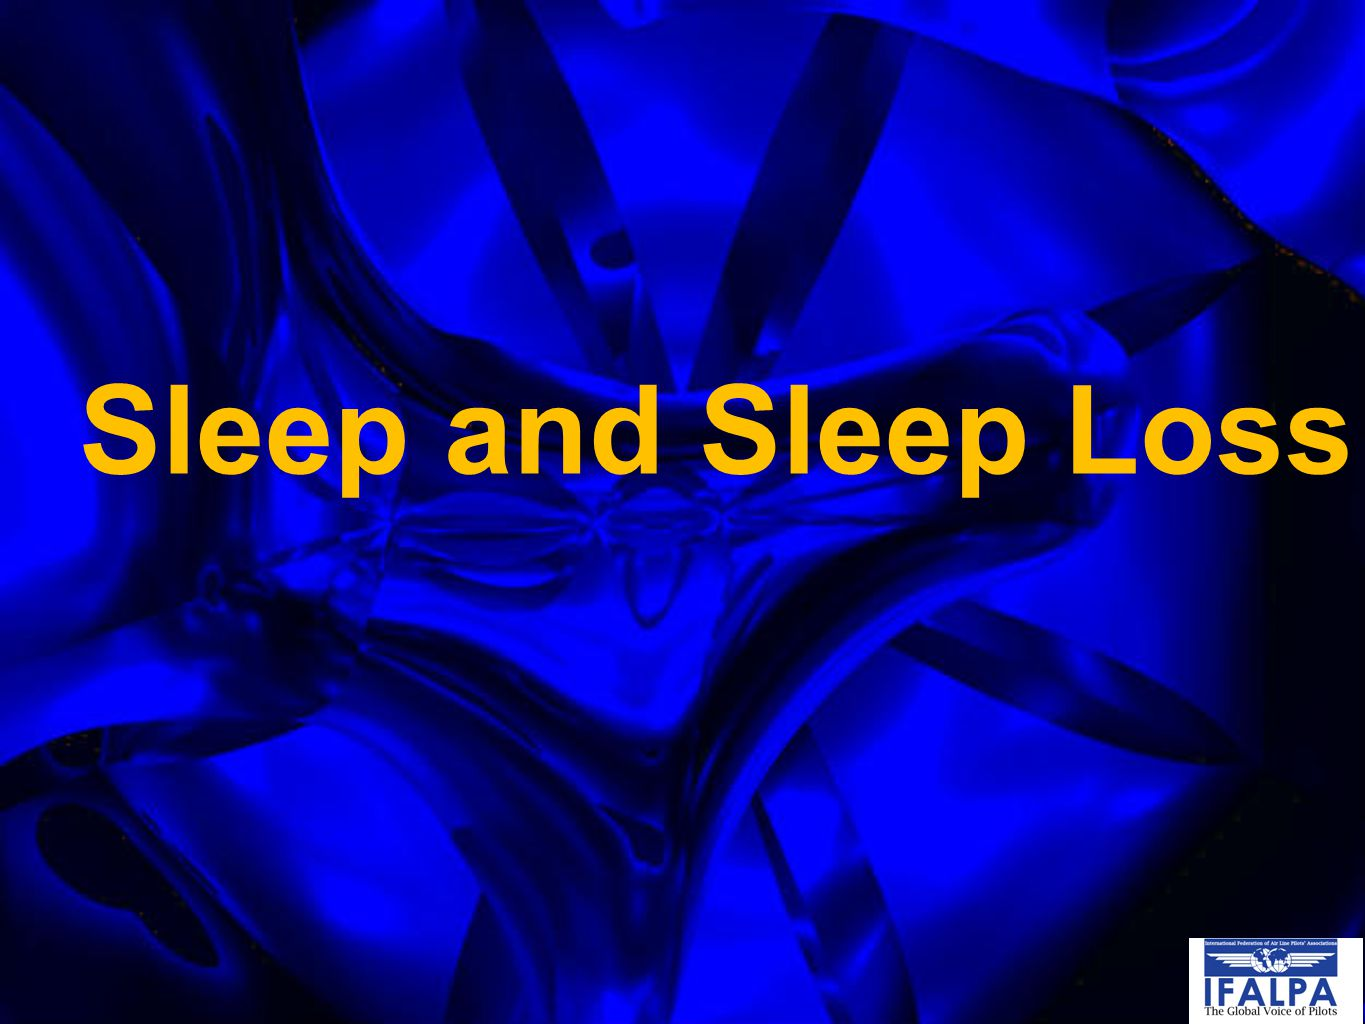 Sleep and Sleep Loss